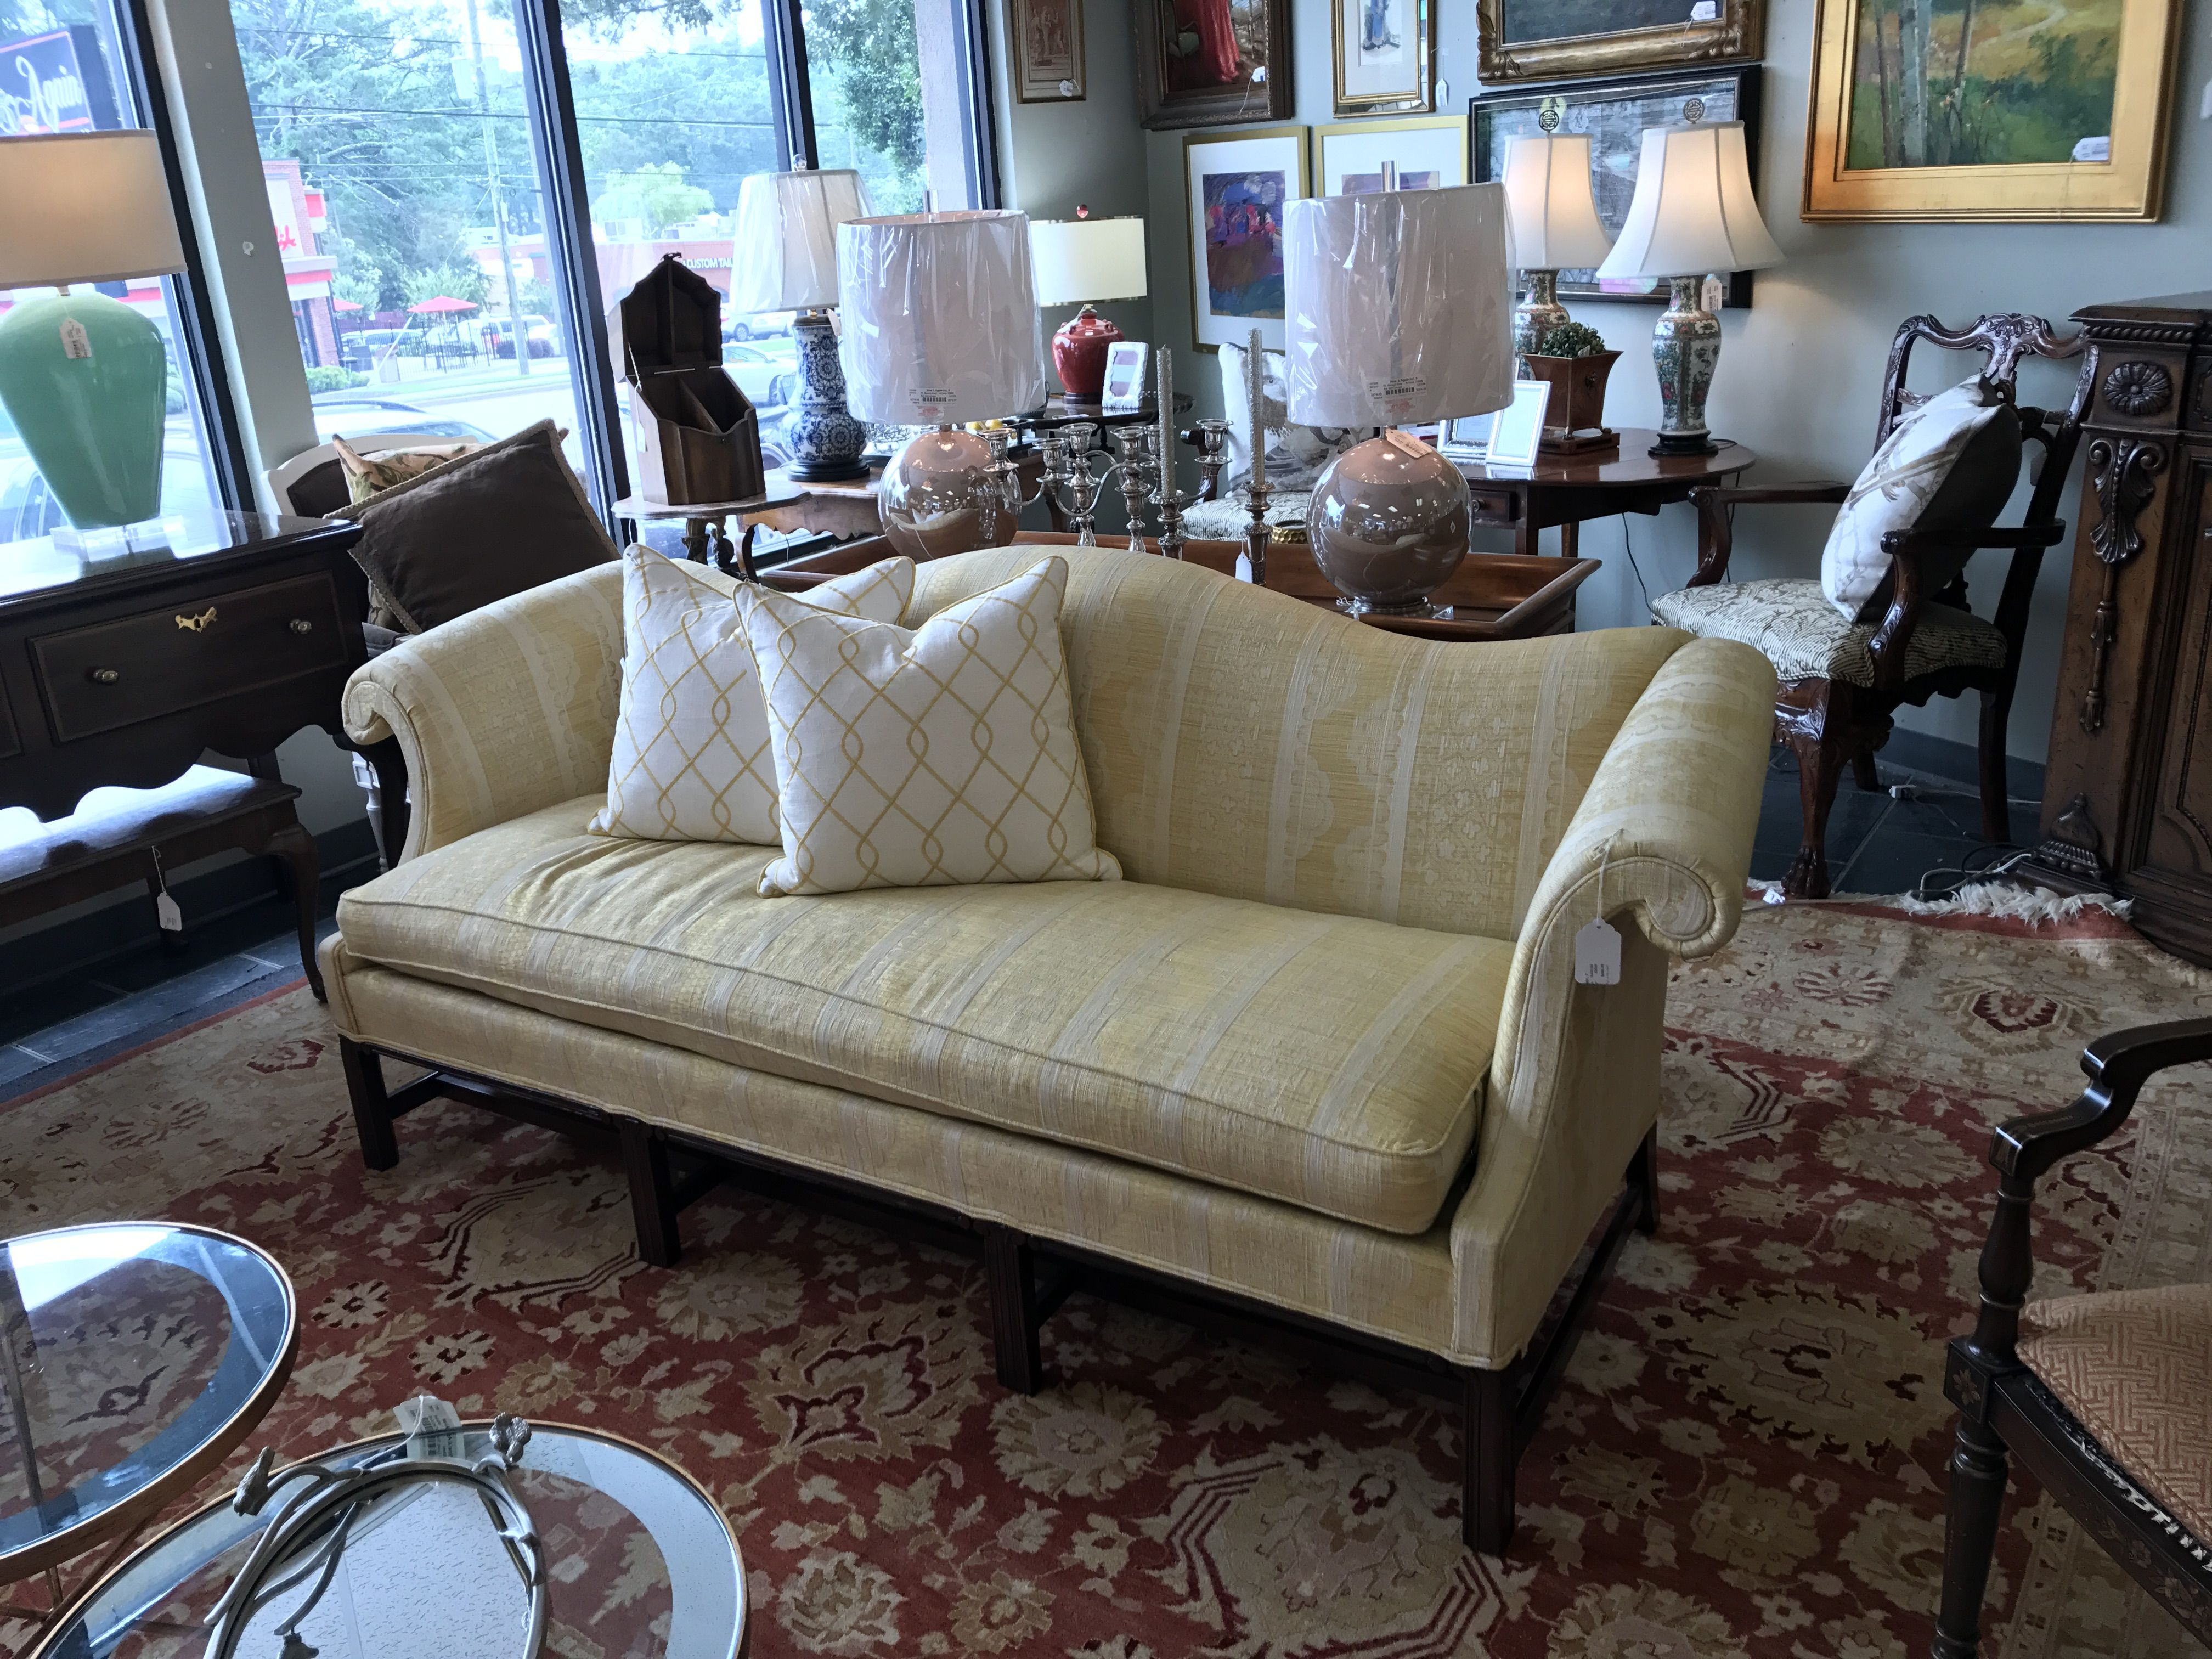 Pin By Now  Again On Living Room Essentials Pinterest - Living room essentials